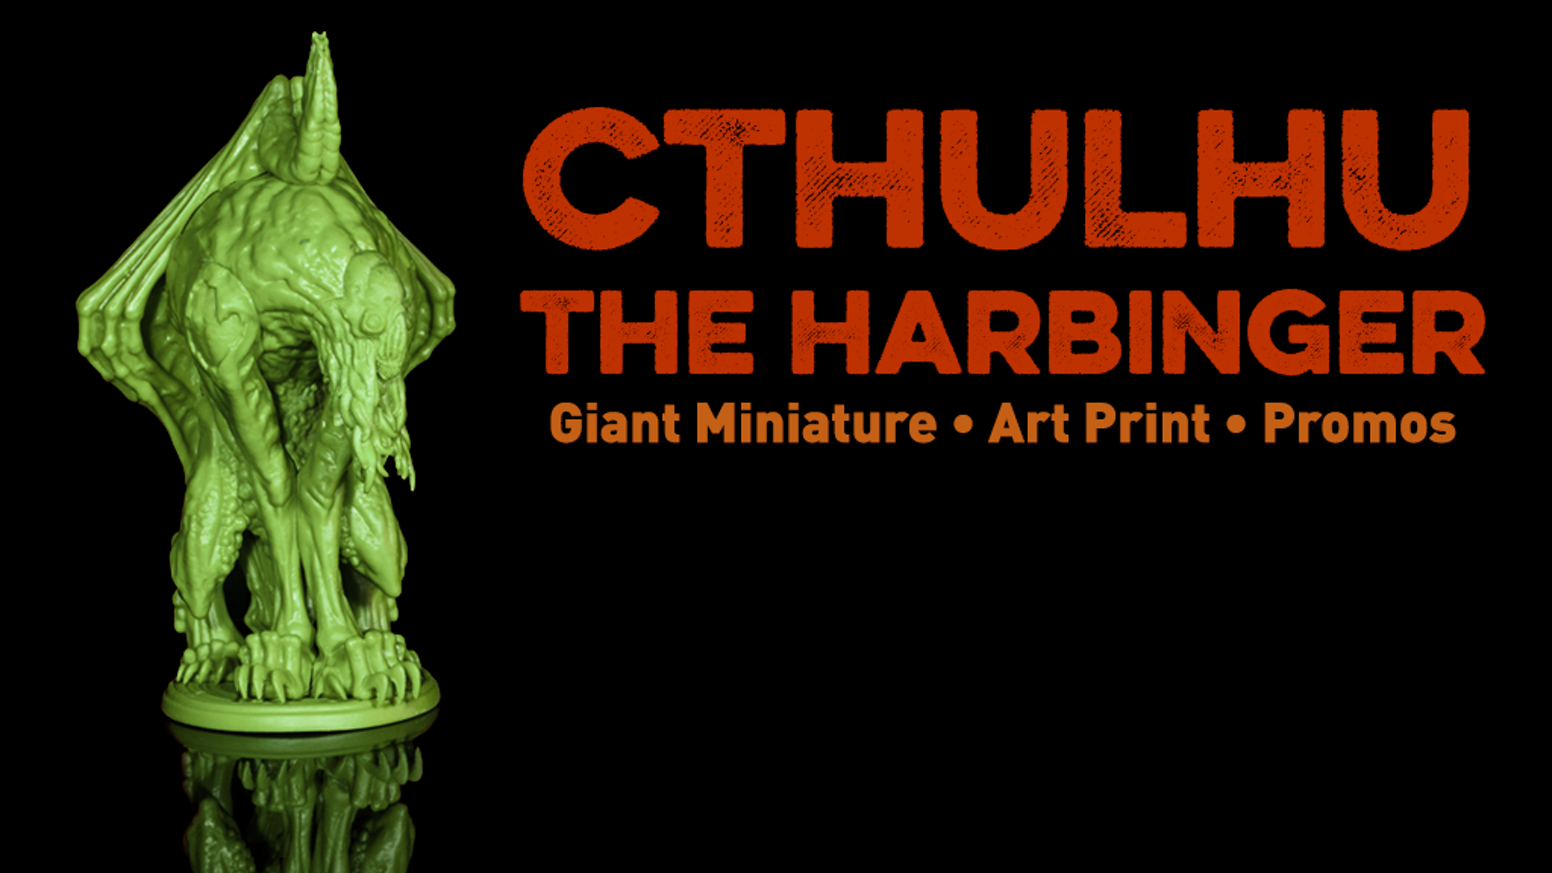 An impressive figure of Cthulhu, suitable for veneration.